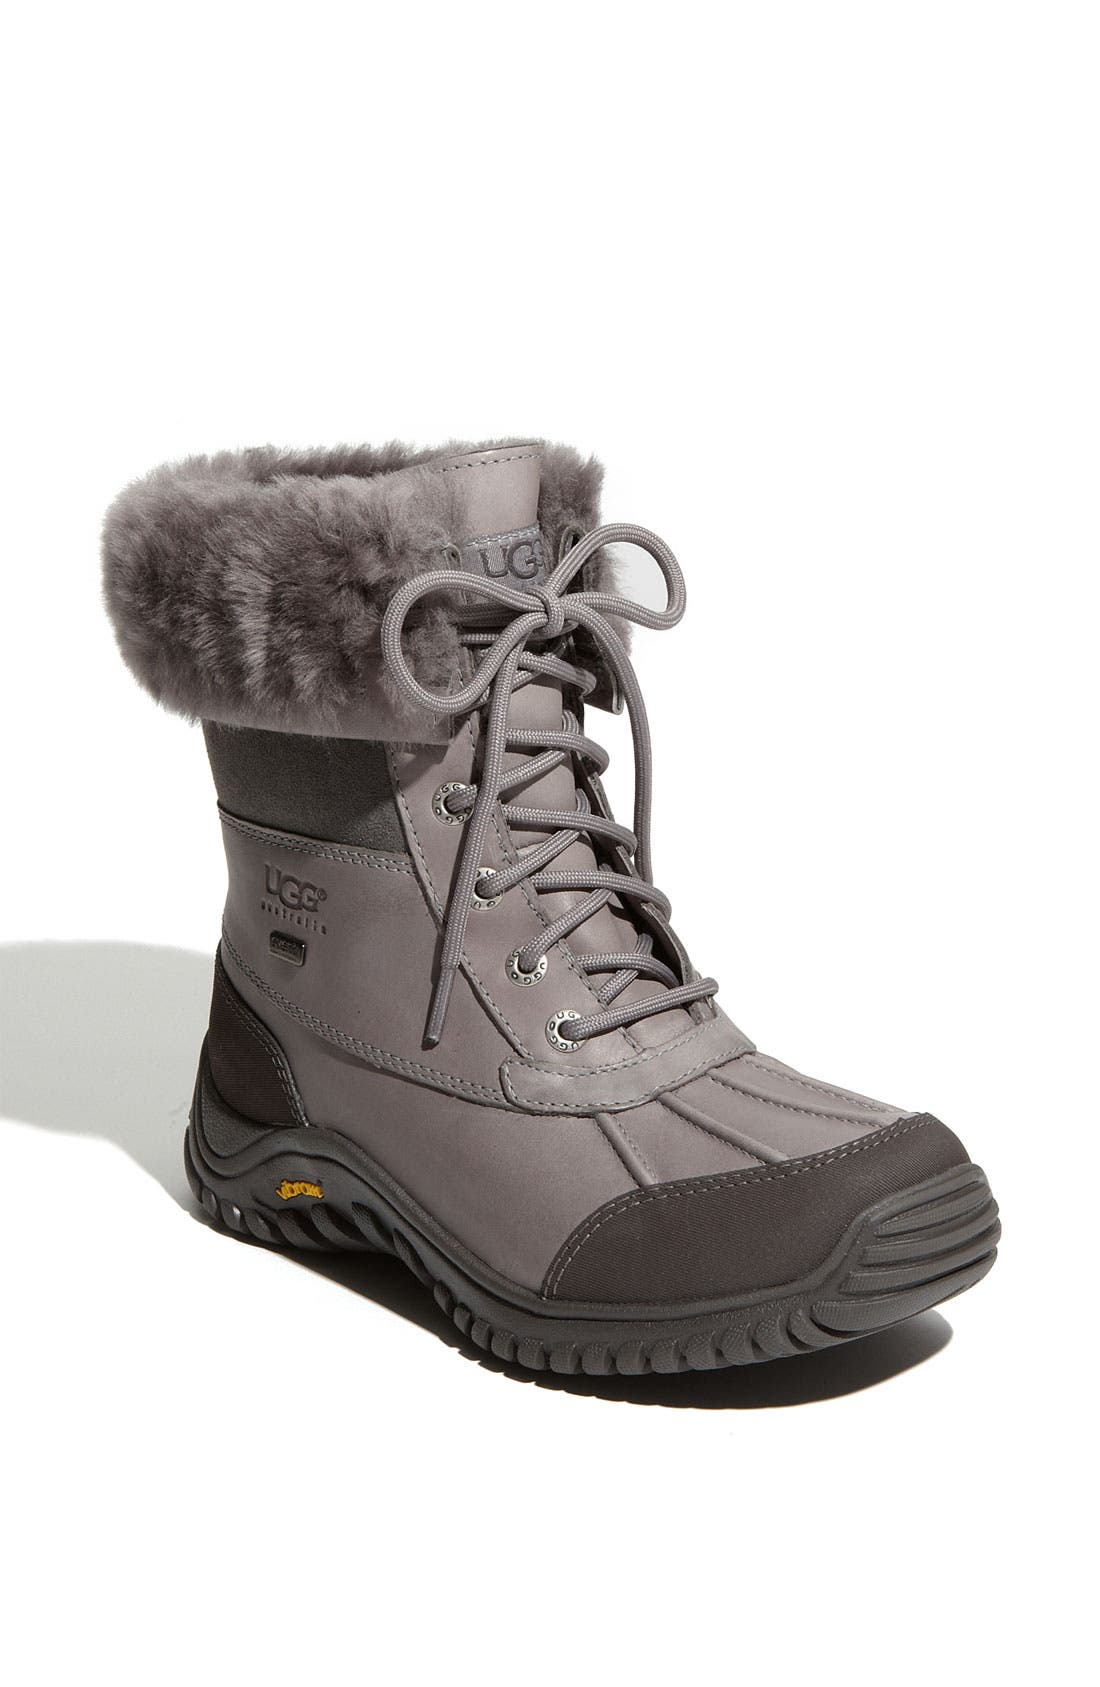 Adirondack II Waterproof Boot,                             Main thumbnail 7, color,